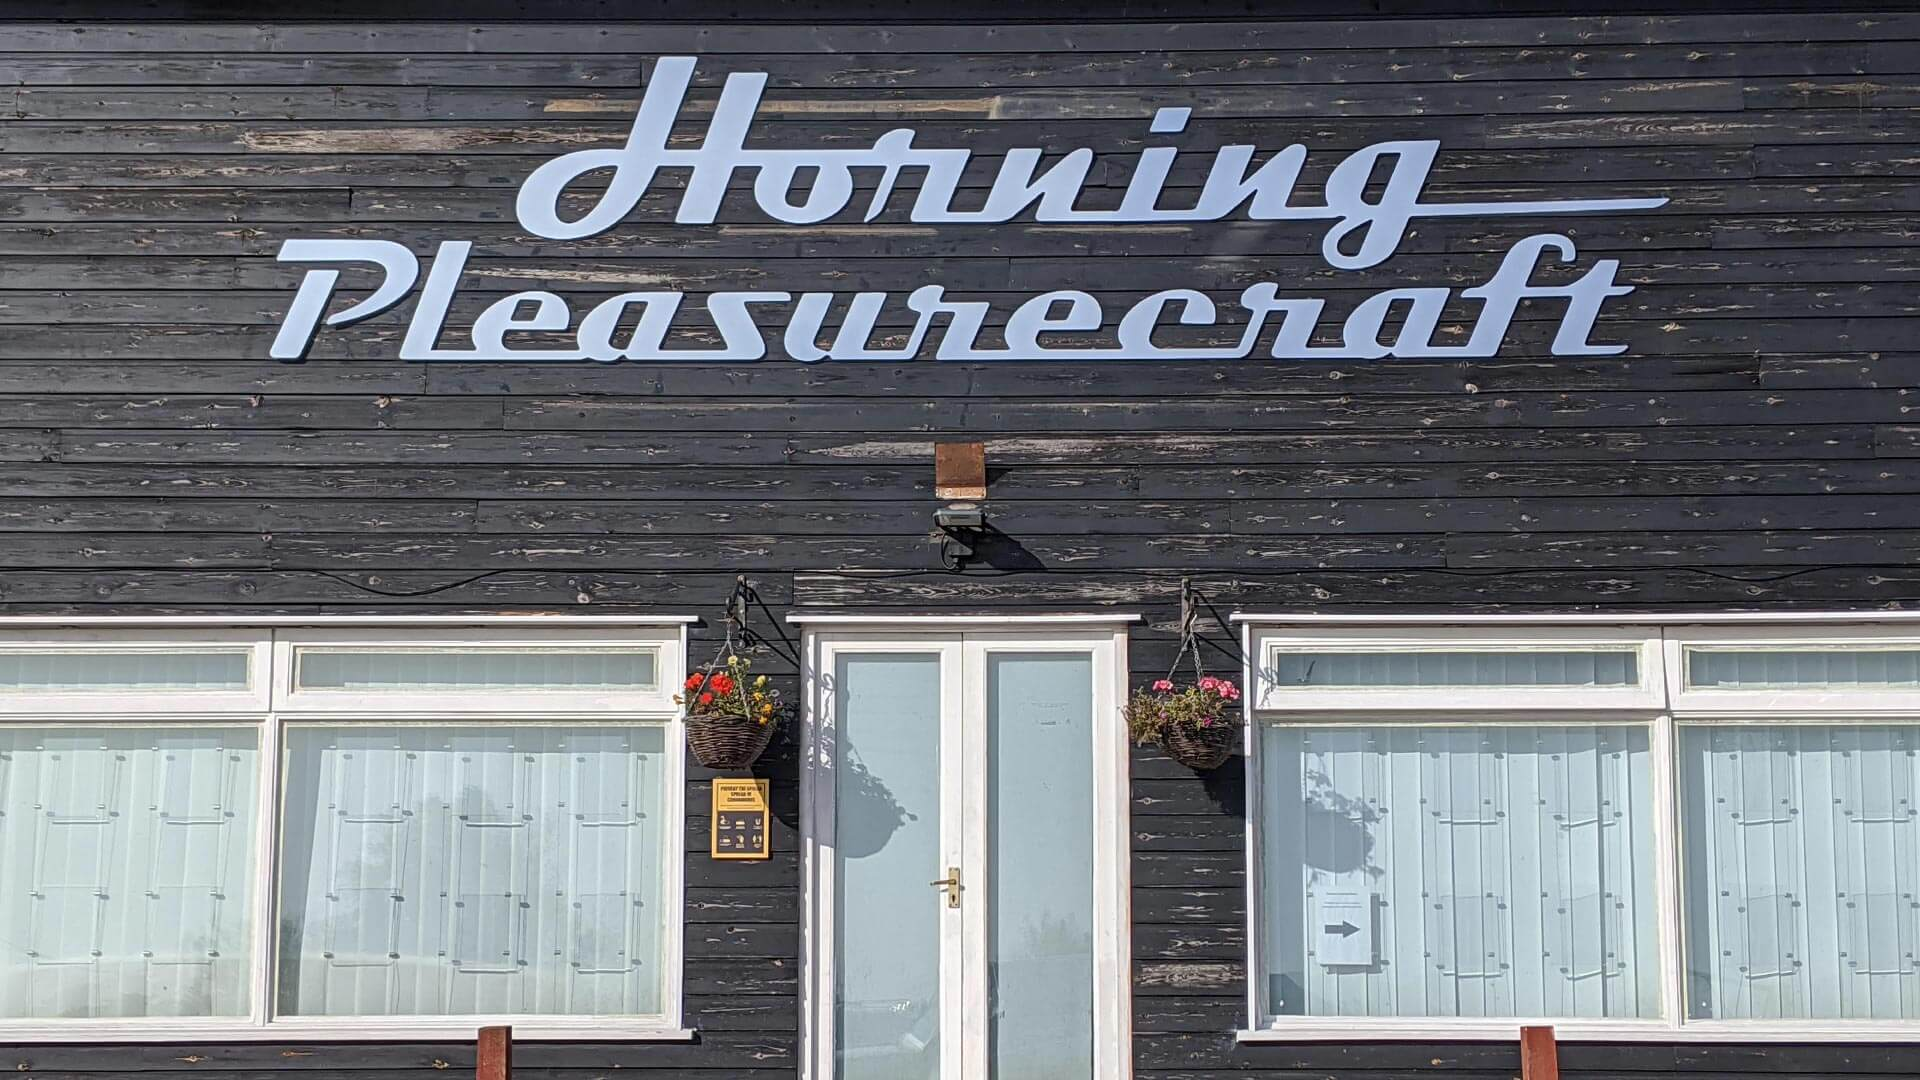 Horning Pleasurecraft